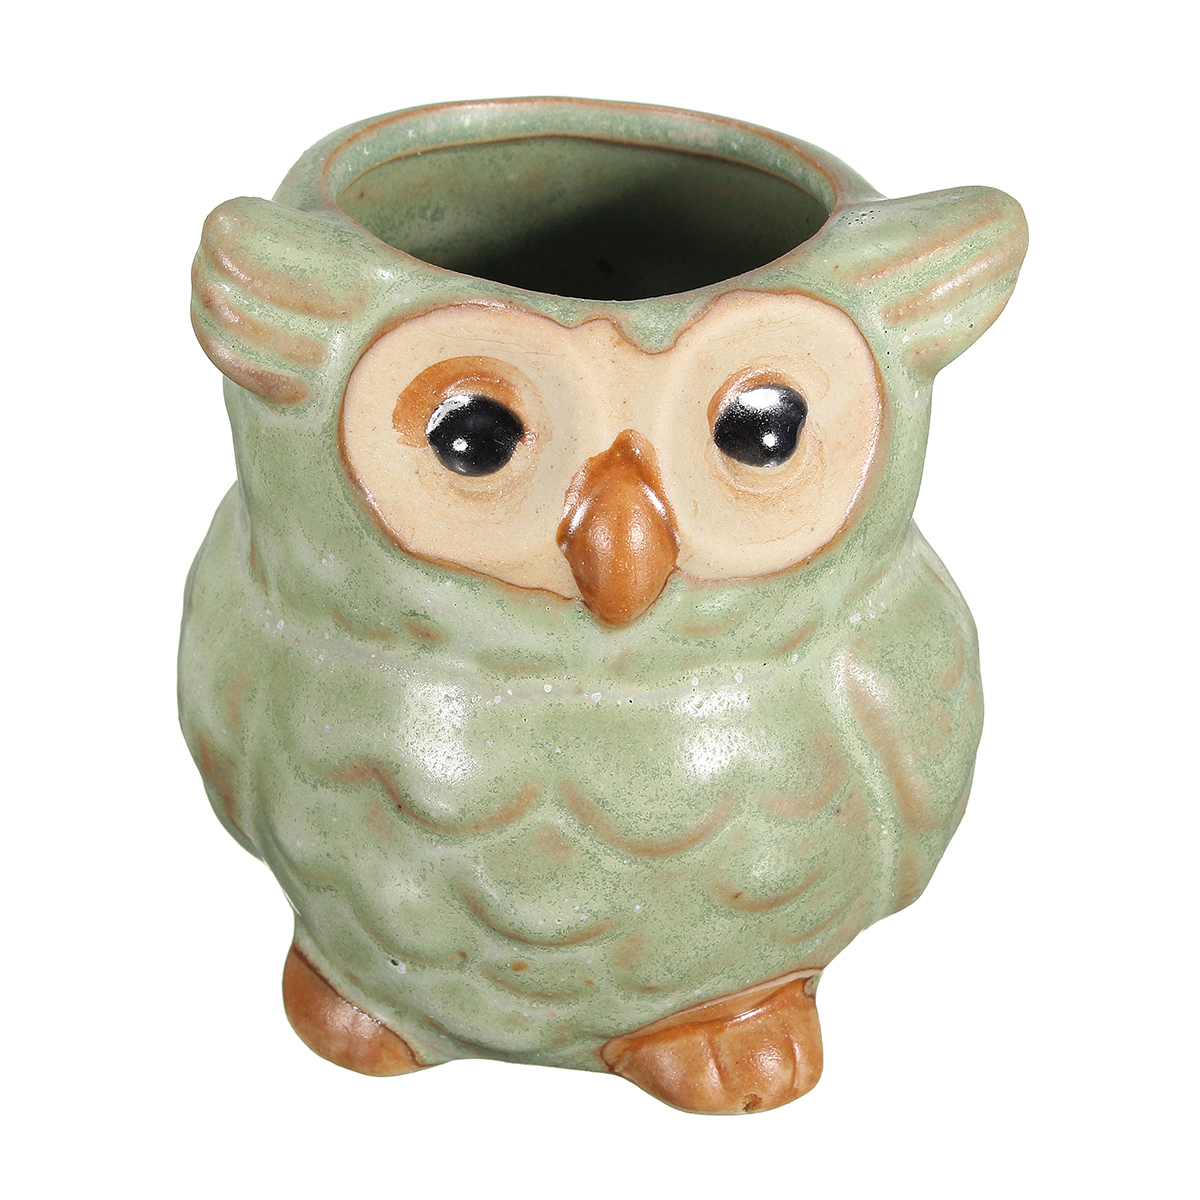 Garden Ceramic Owl Mini Flower Pot Succulent Plants Planters Office Desk Decor